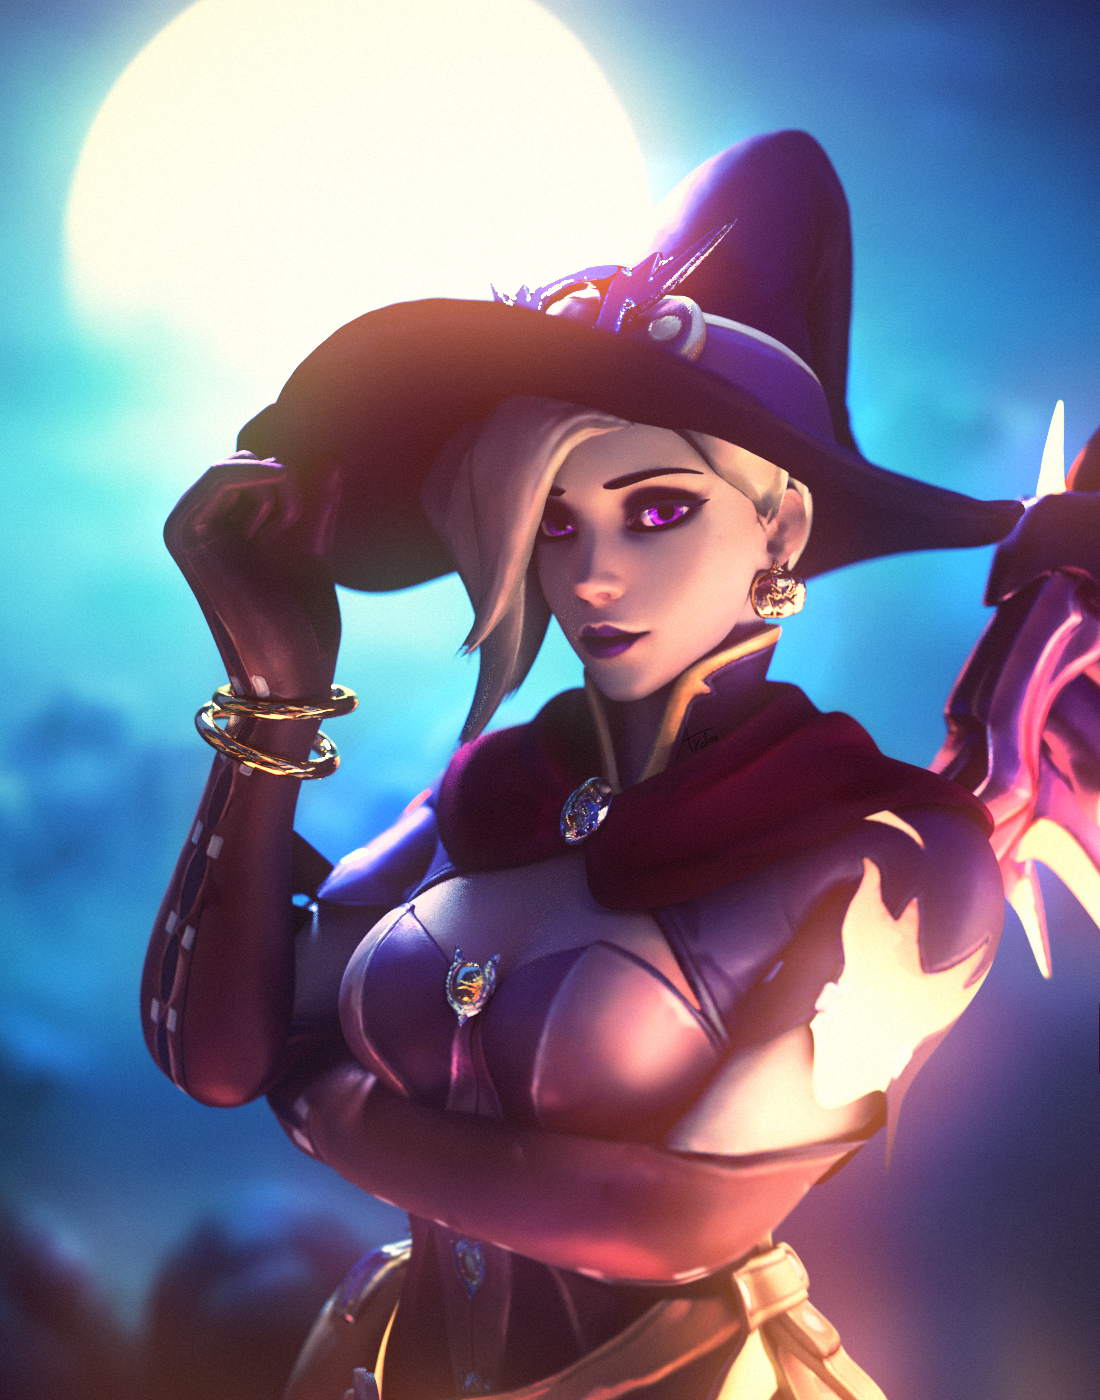 Halloween Mercy by qewe7829 on DeviantArt